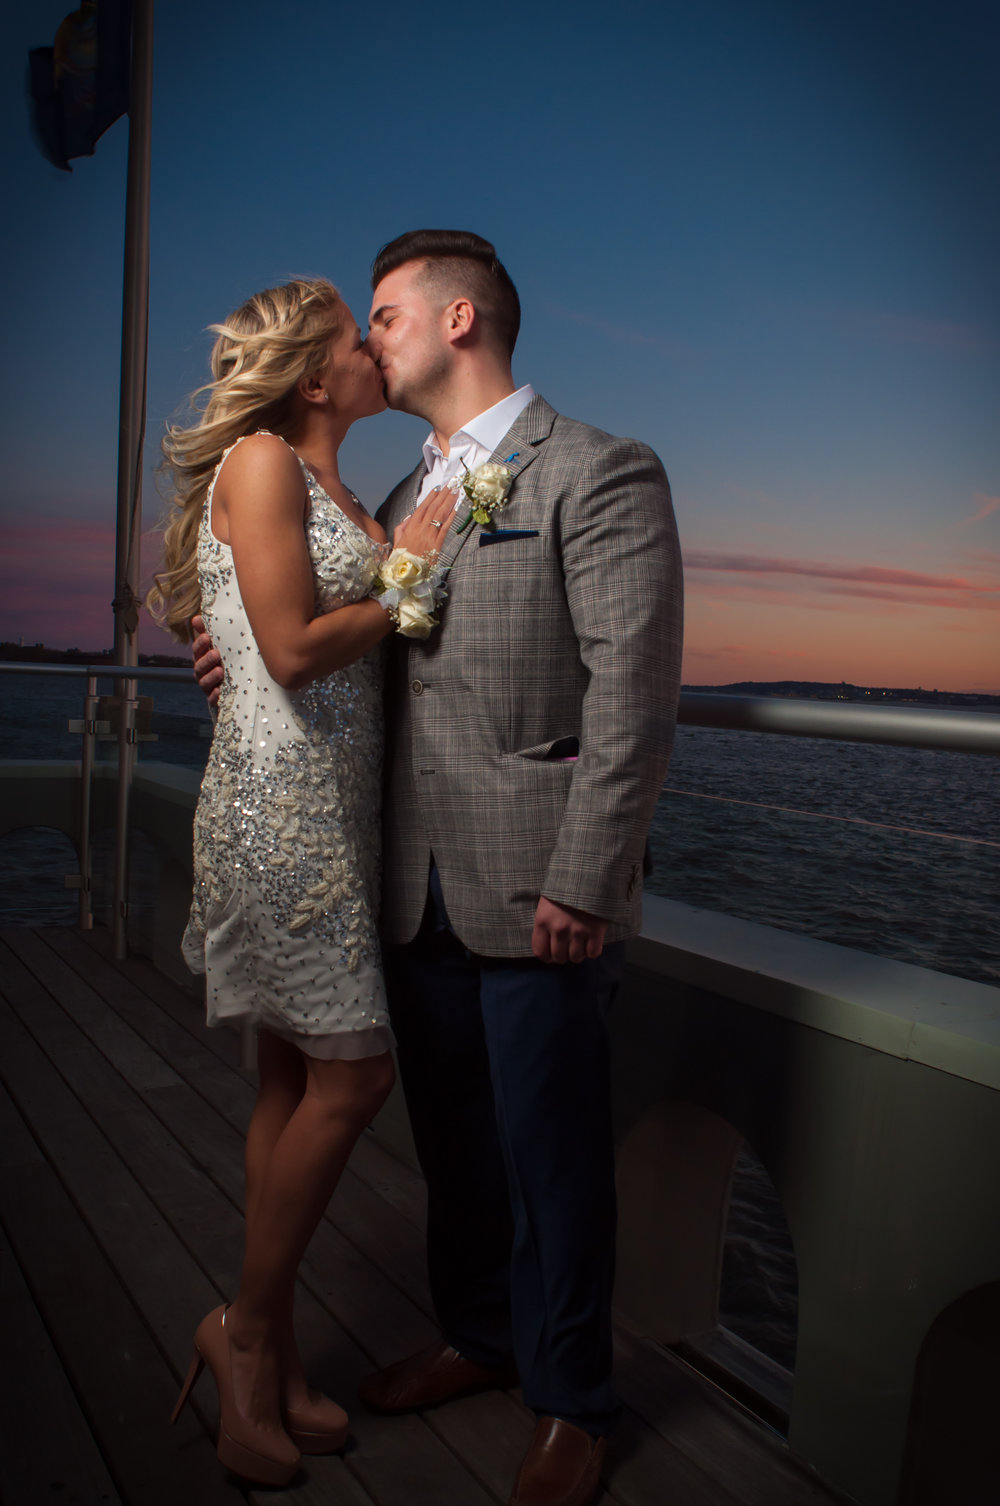 CarrieWestonStudios_Northport_Engagement_Wedding_Portraits_NY_Photography_Photographer--3.jpg